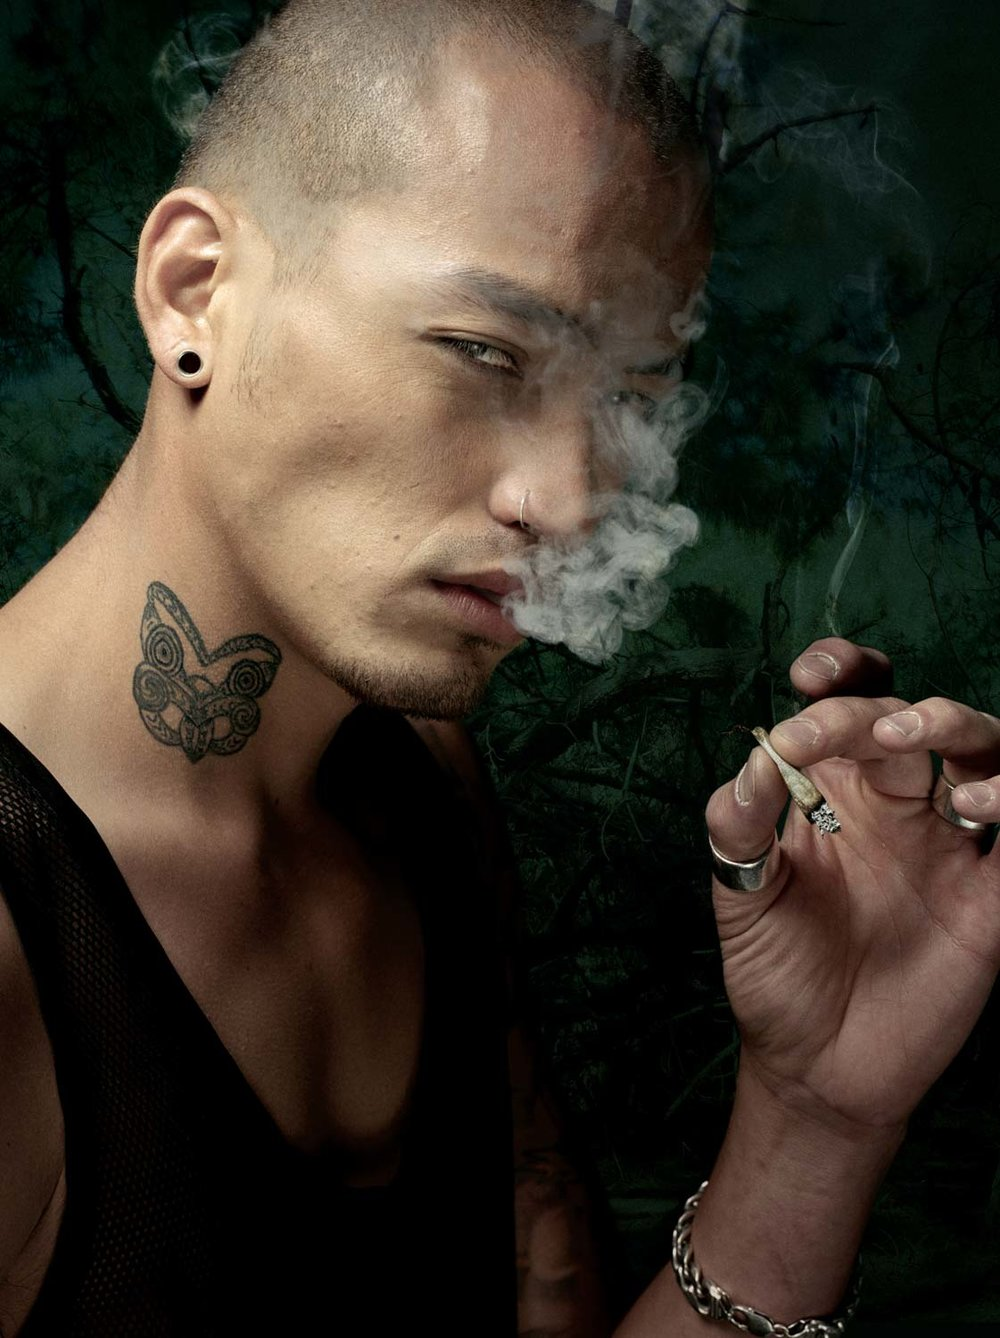 Serious Man Smoking With Tattoo On His Neck